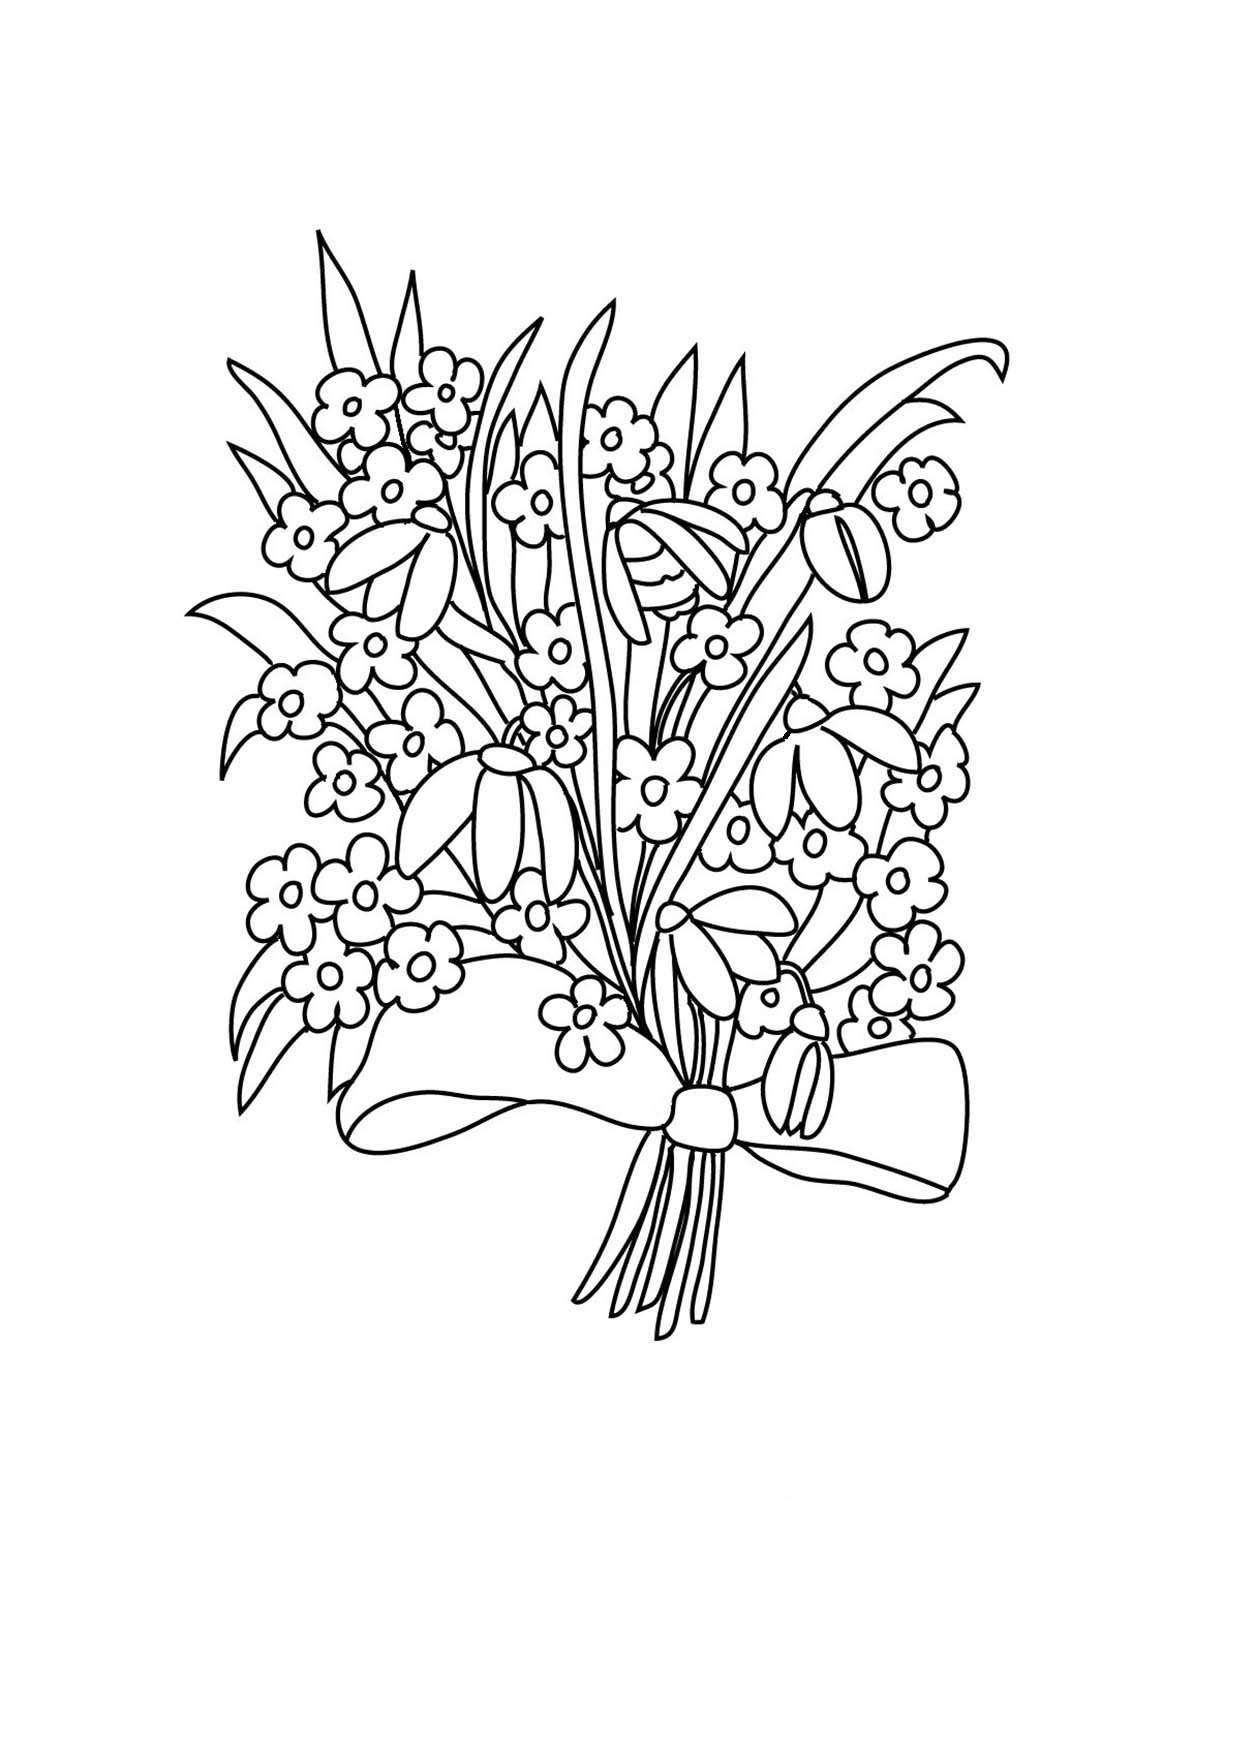 1240x1754 Flower Coloring Pages